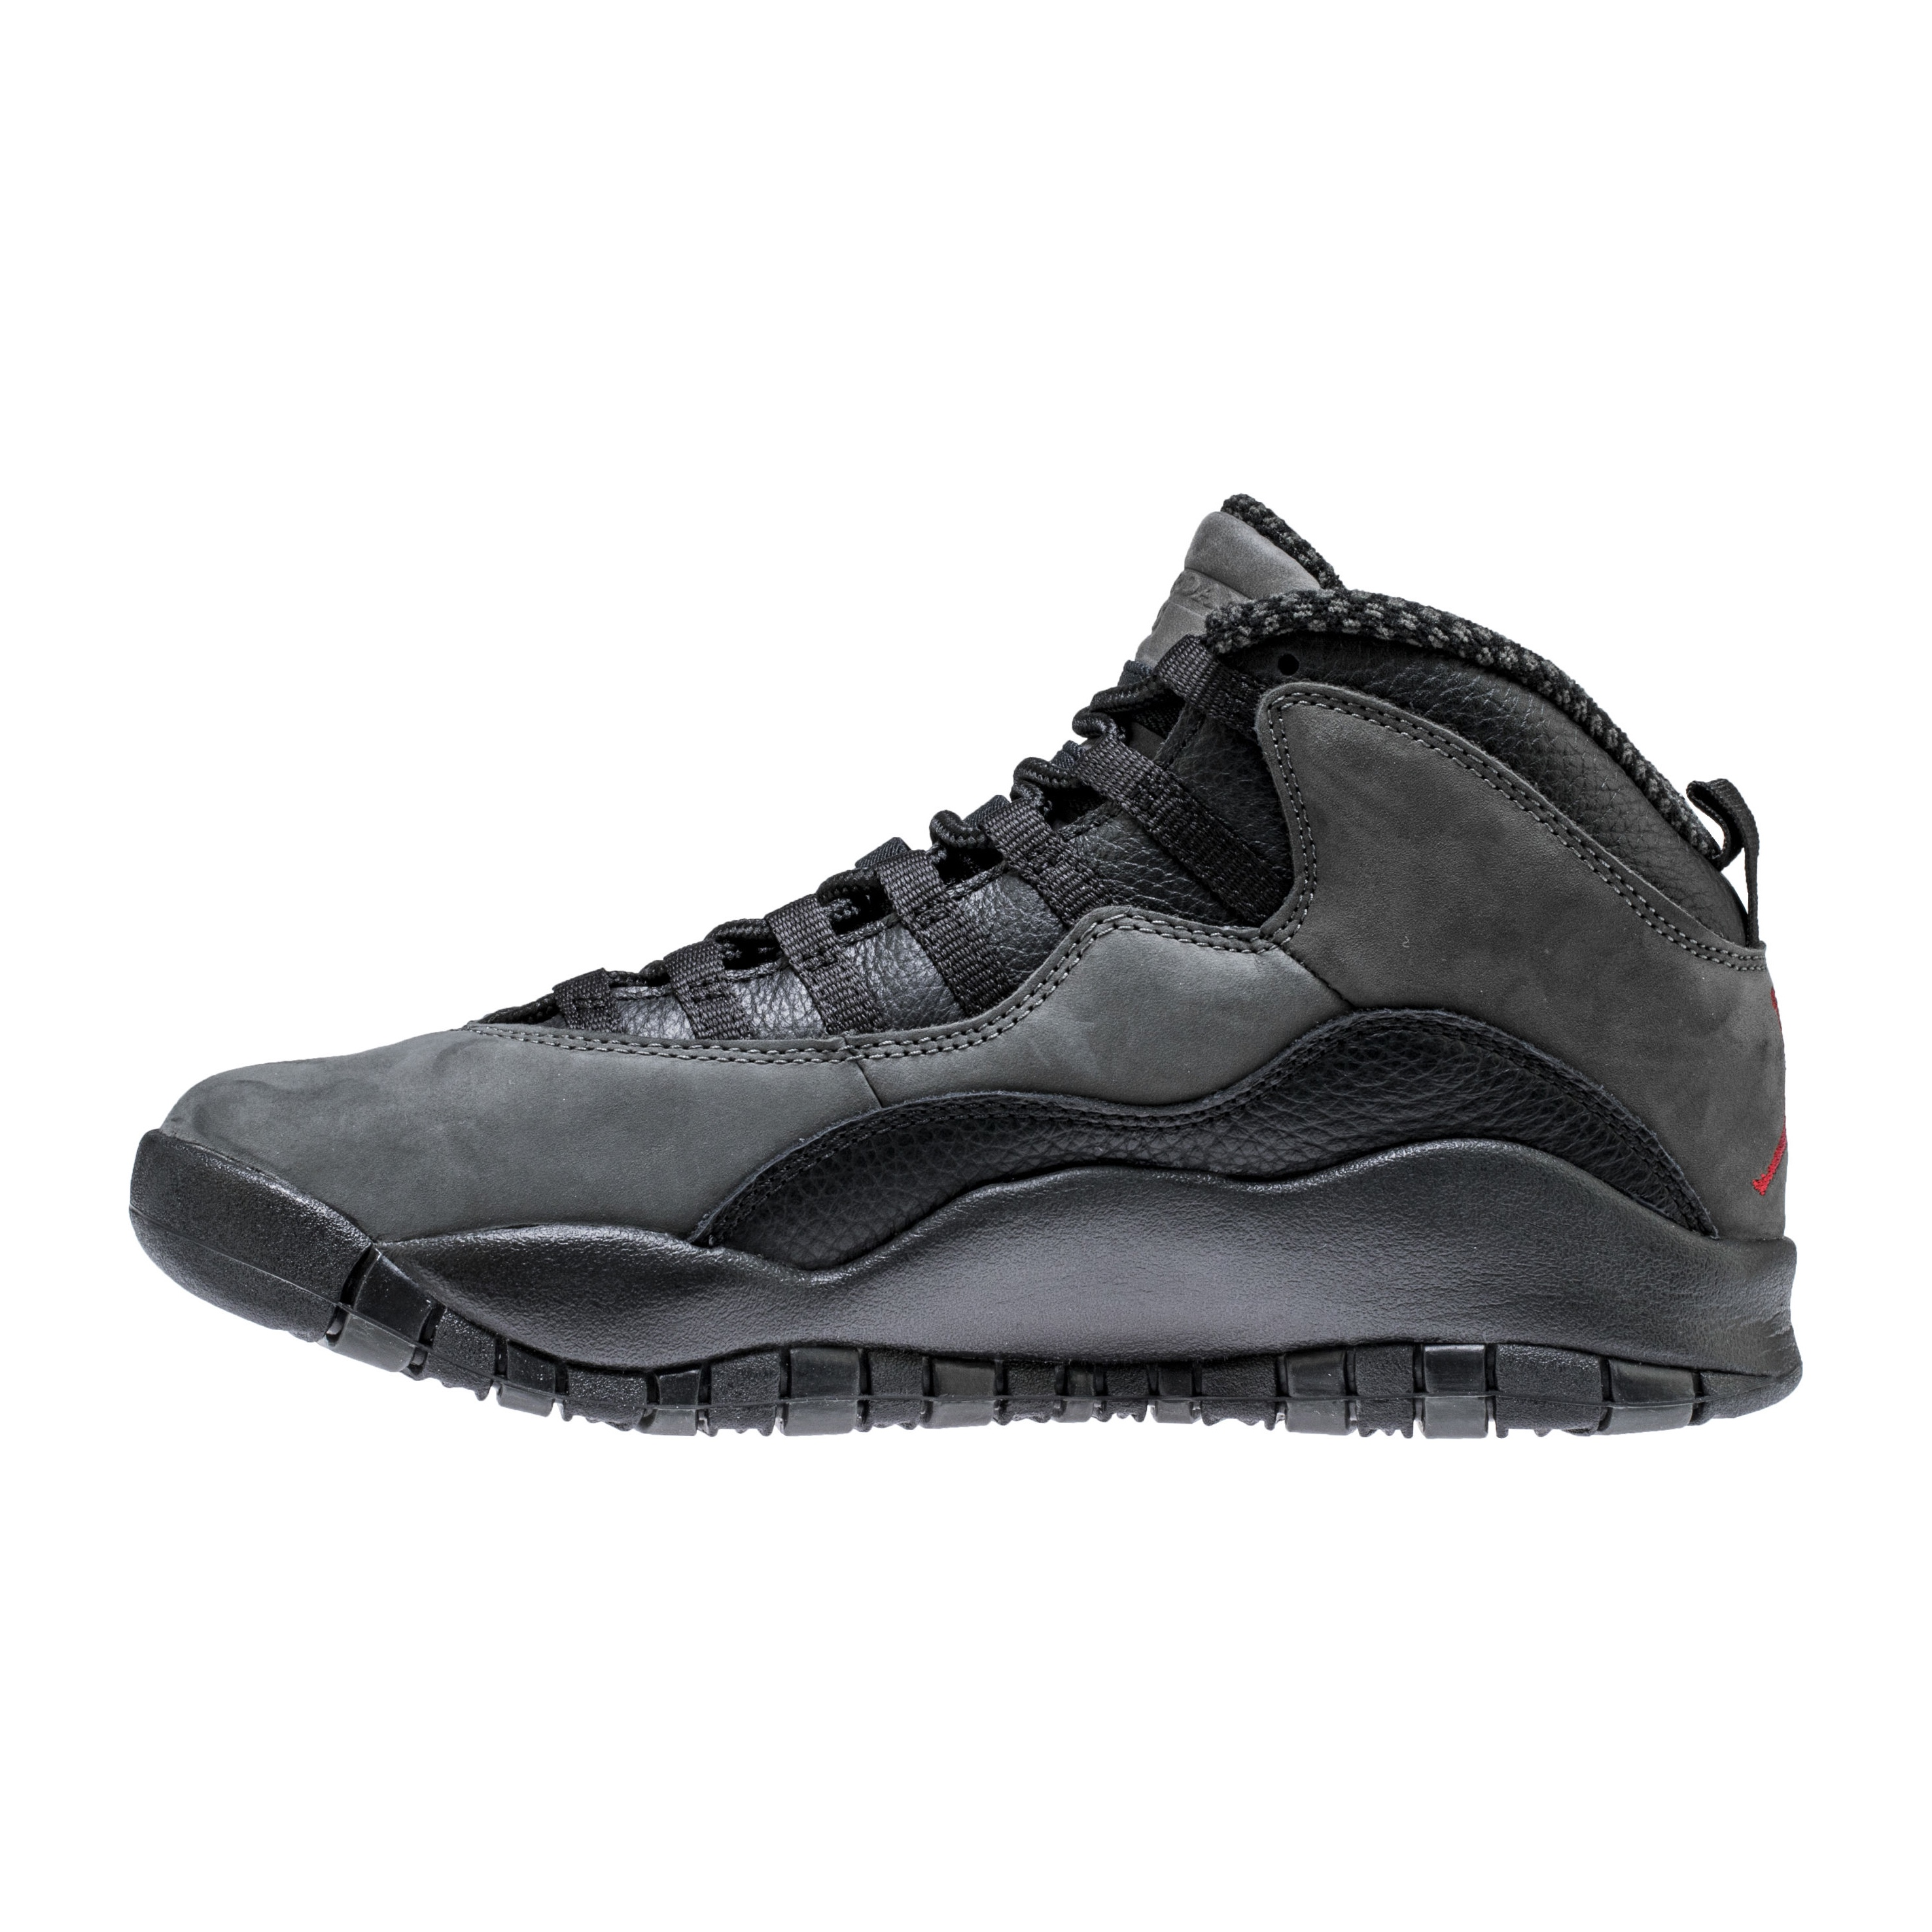 separation shoes d94a3 e66a8 Release Reminder: The Air Jordan 10 'Shadow' Arrives in ...